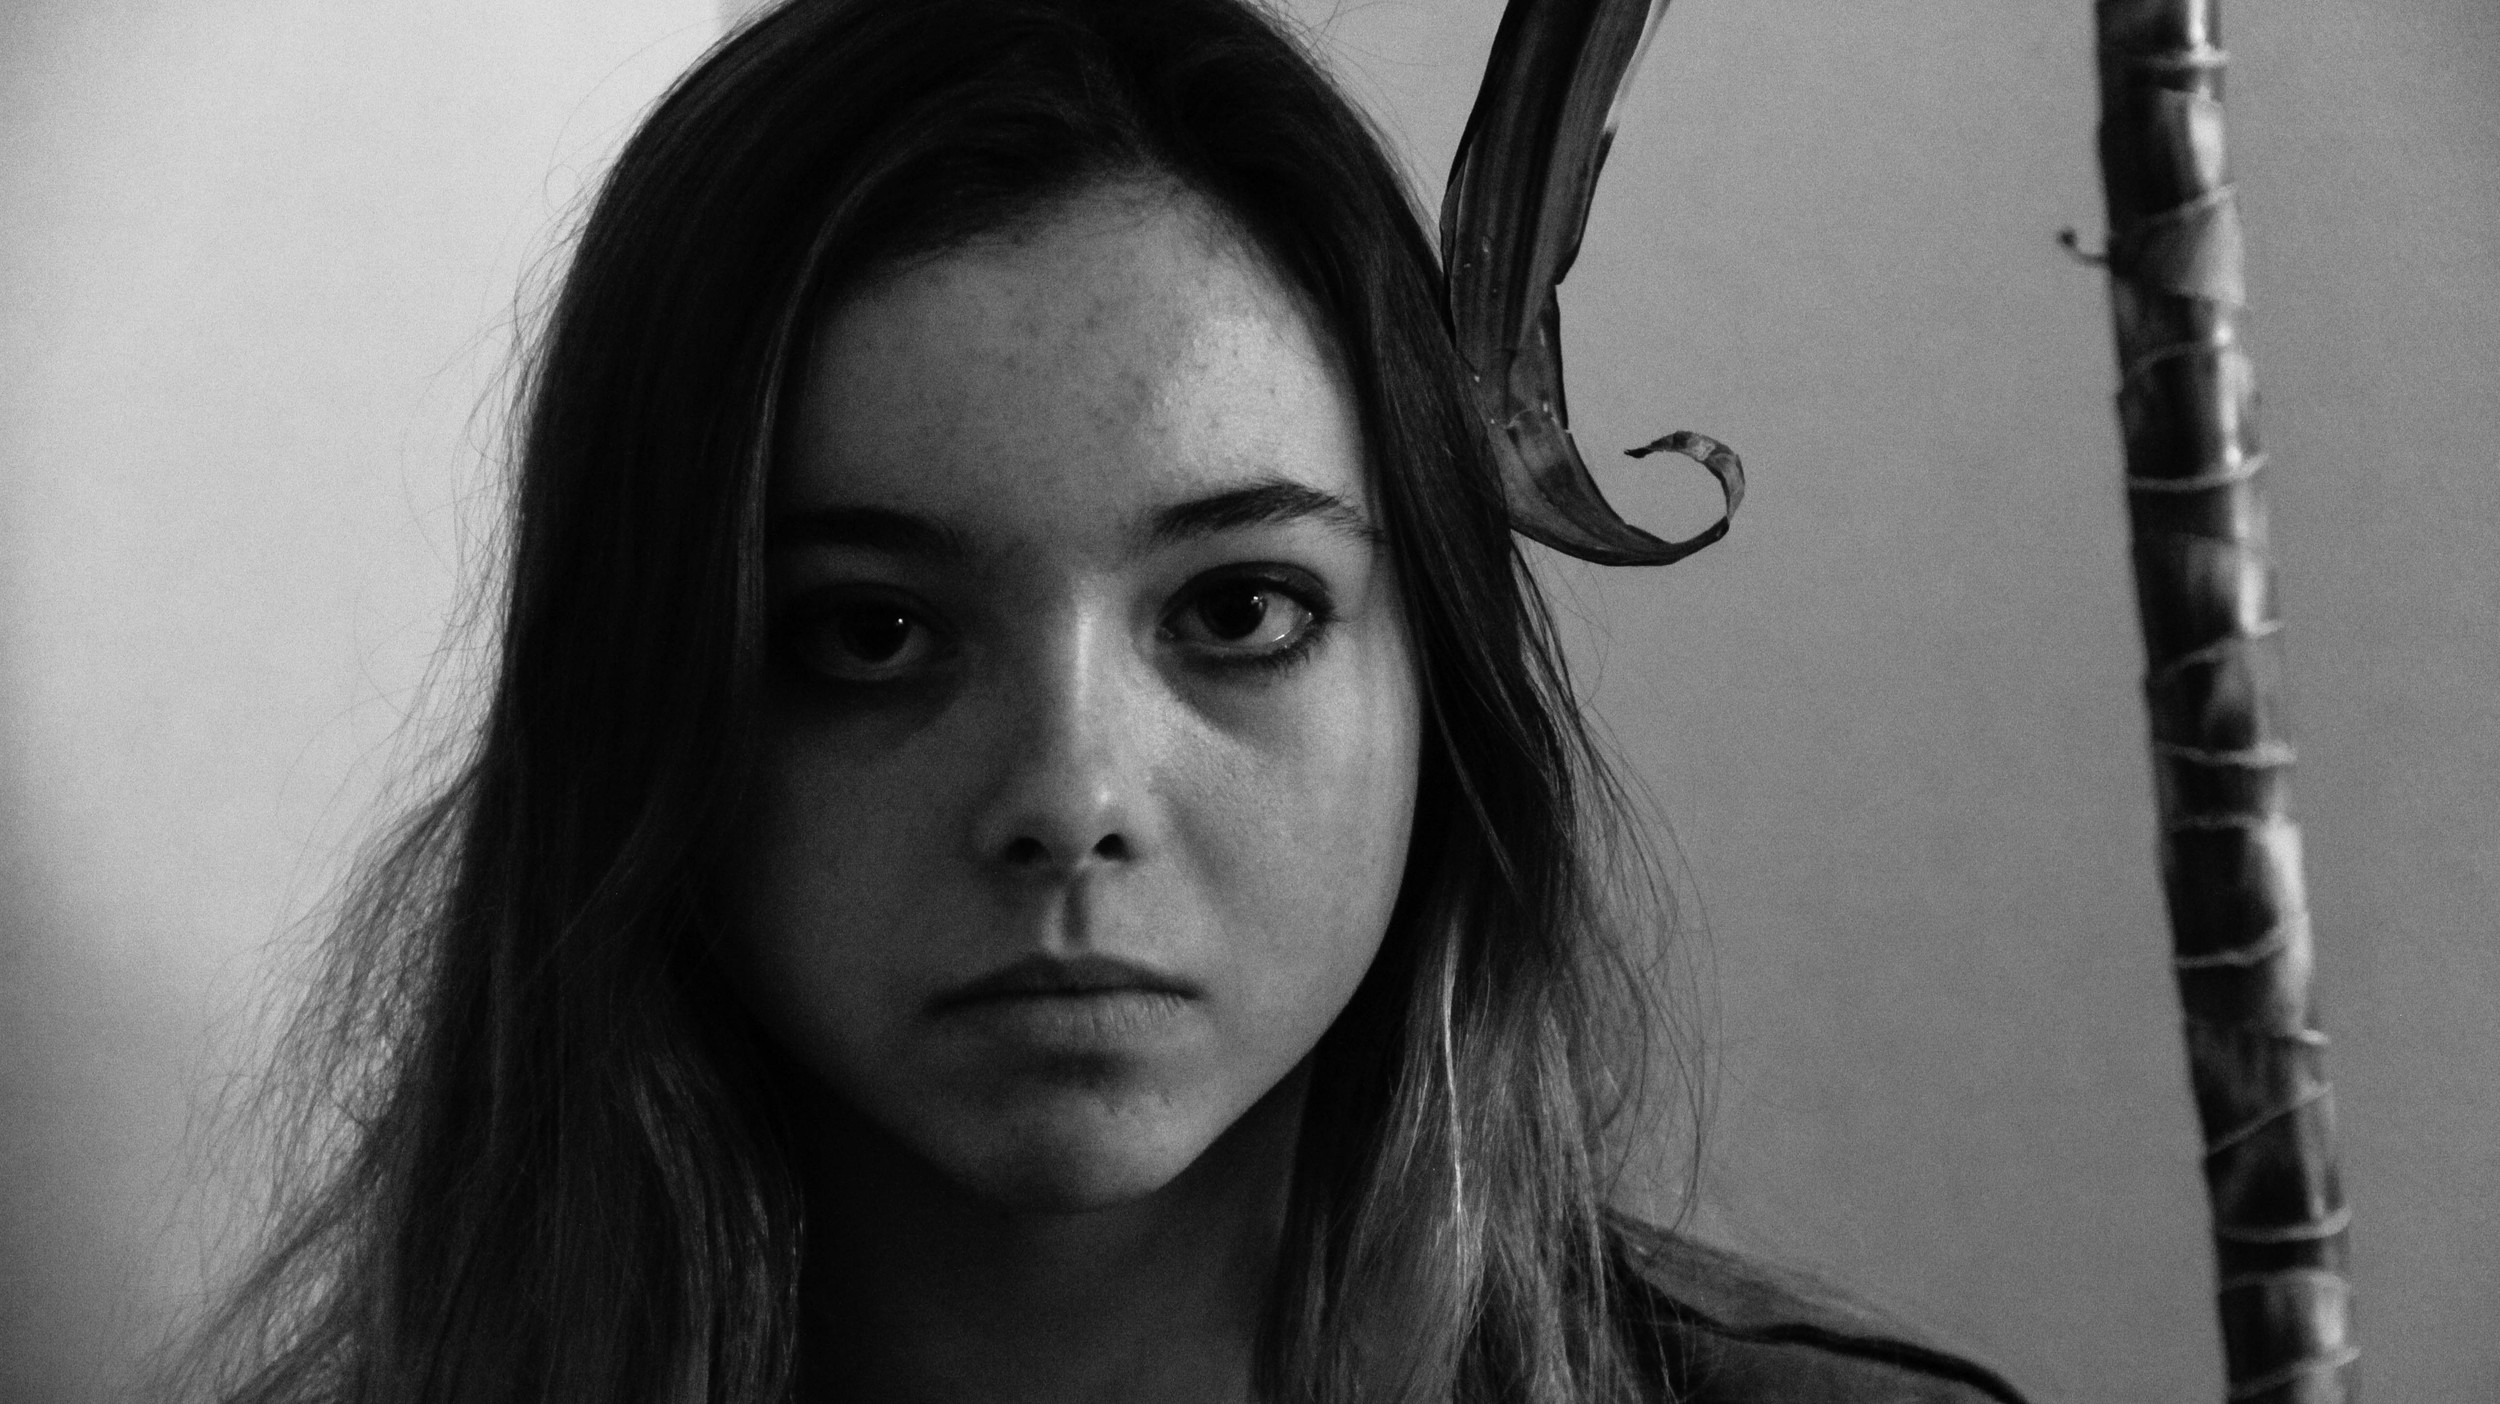 Caroline Gorman '18 is one half of Madness and the Film. Originally from NYC, she's been exposed to the sleepless art scene that now continues to fuel her passion for music and film at Brown. A musician, film-maker, and visual artist, she has great projects lying ahead.